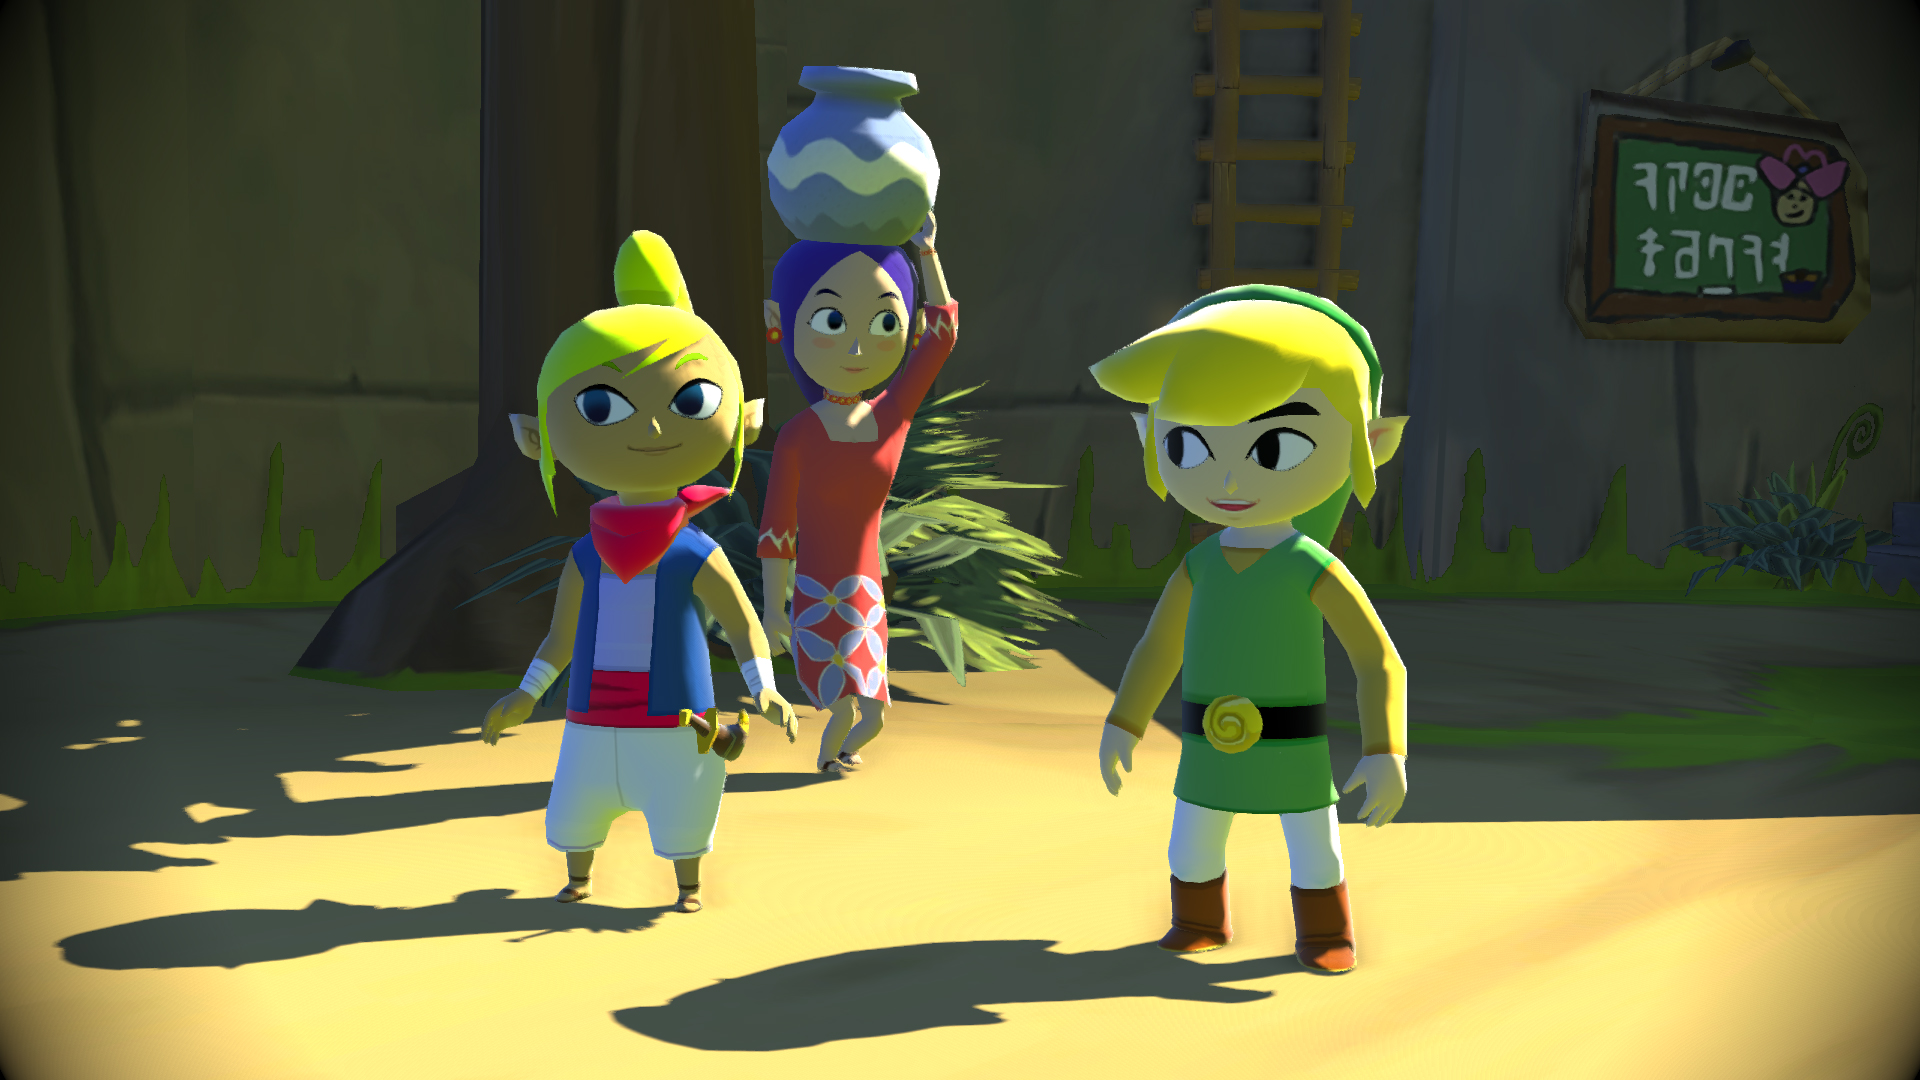 legend of zelda wind waker emulator